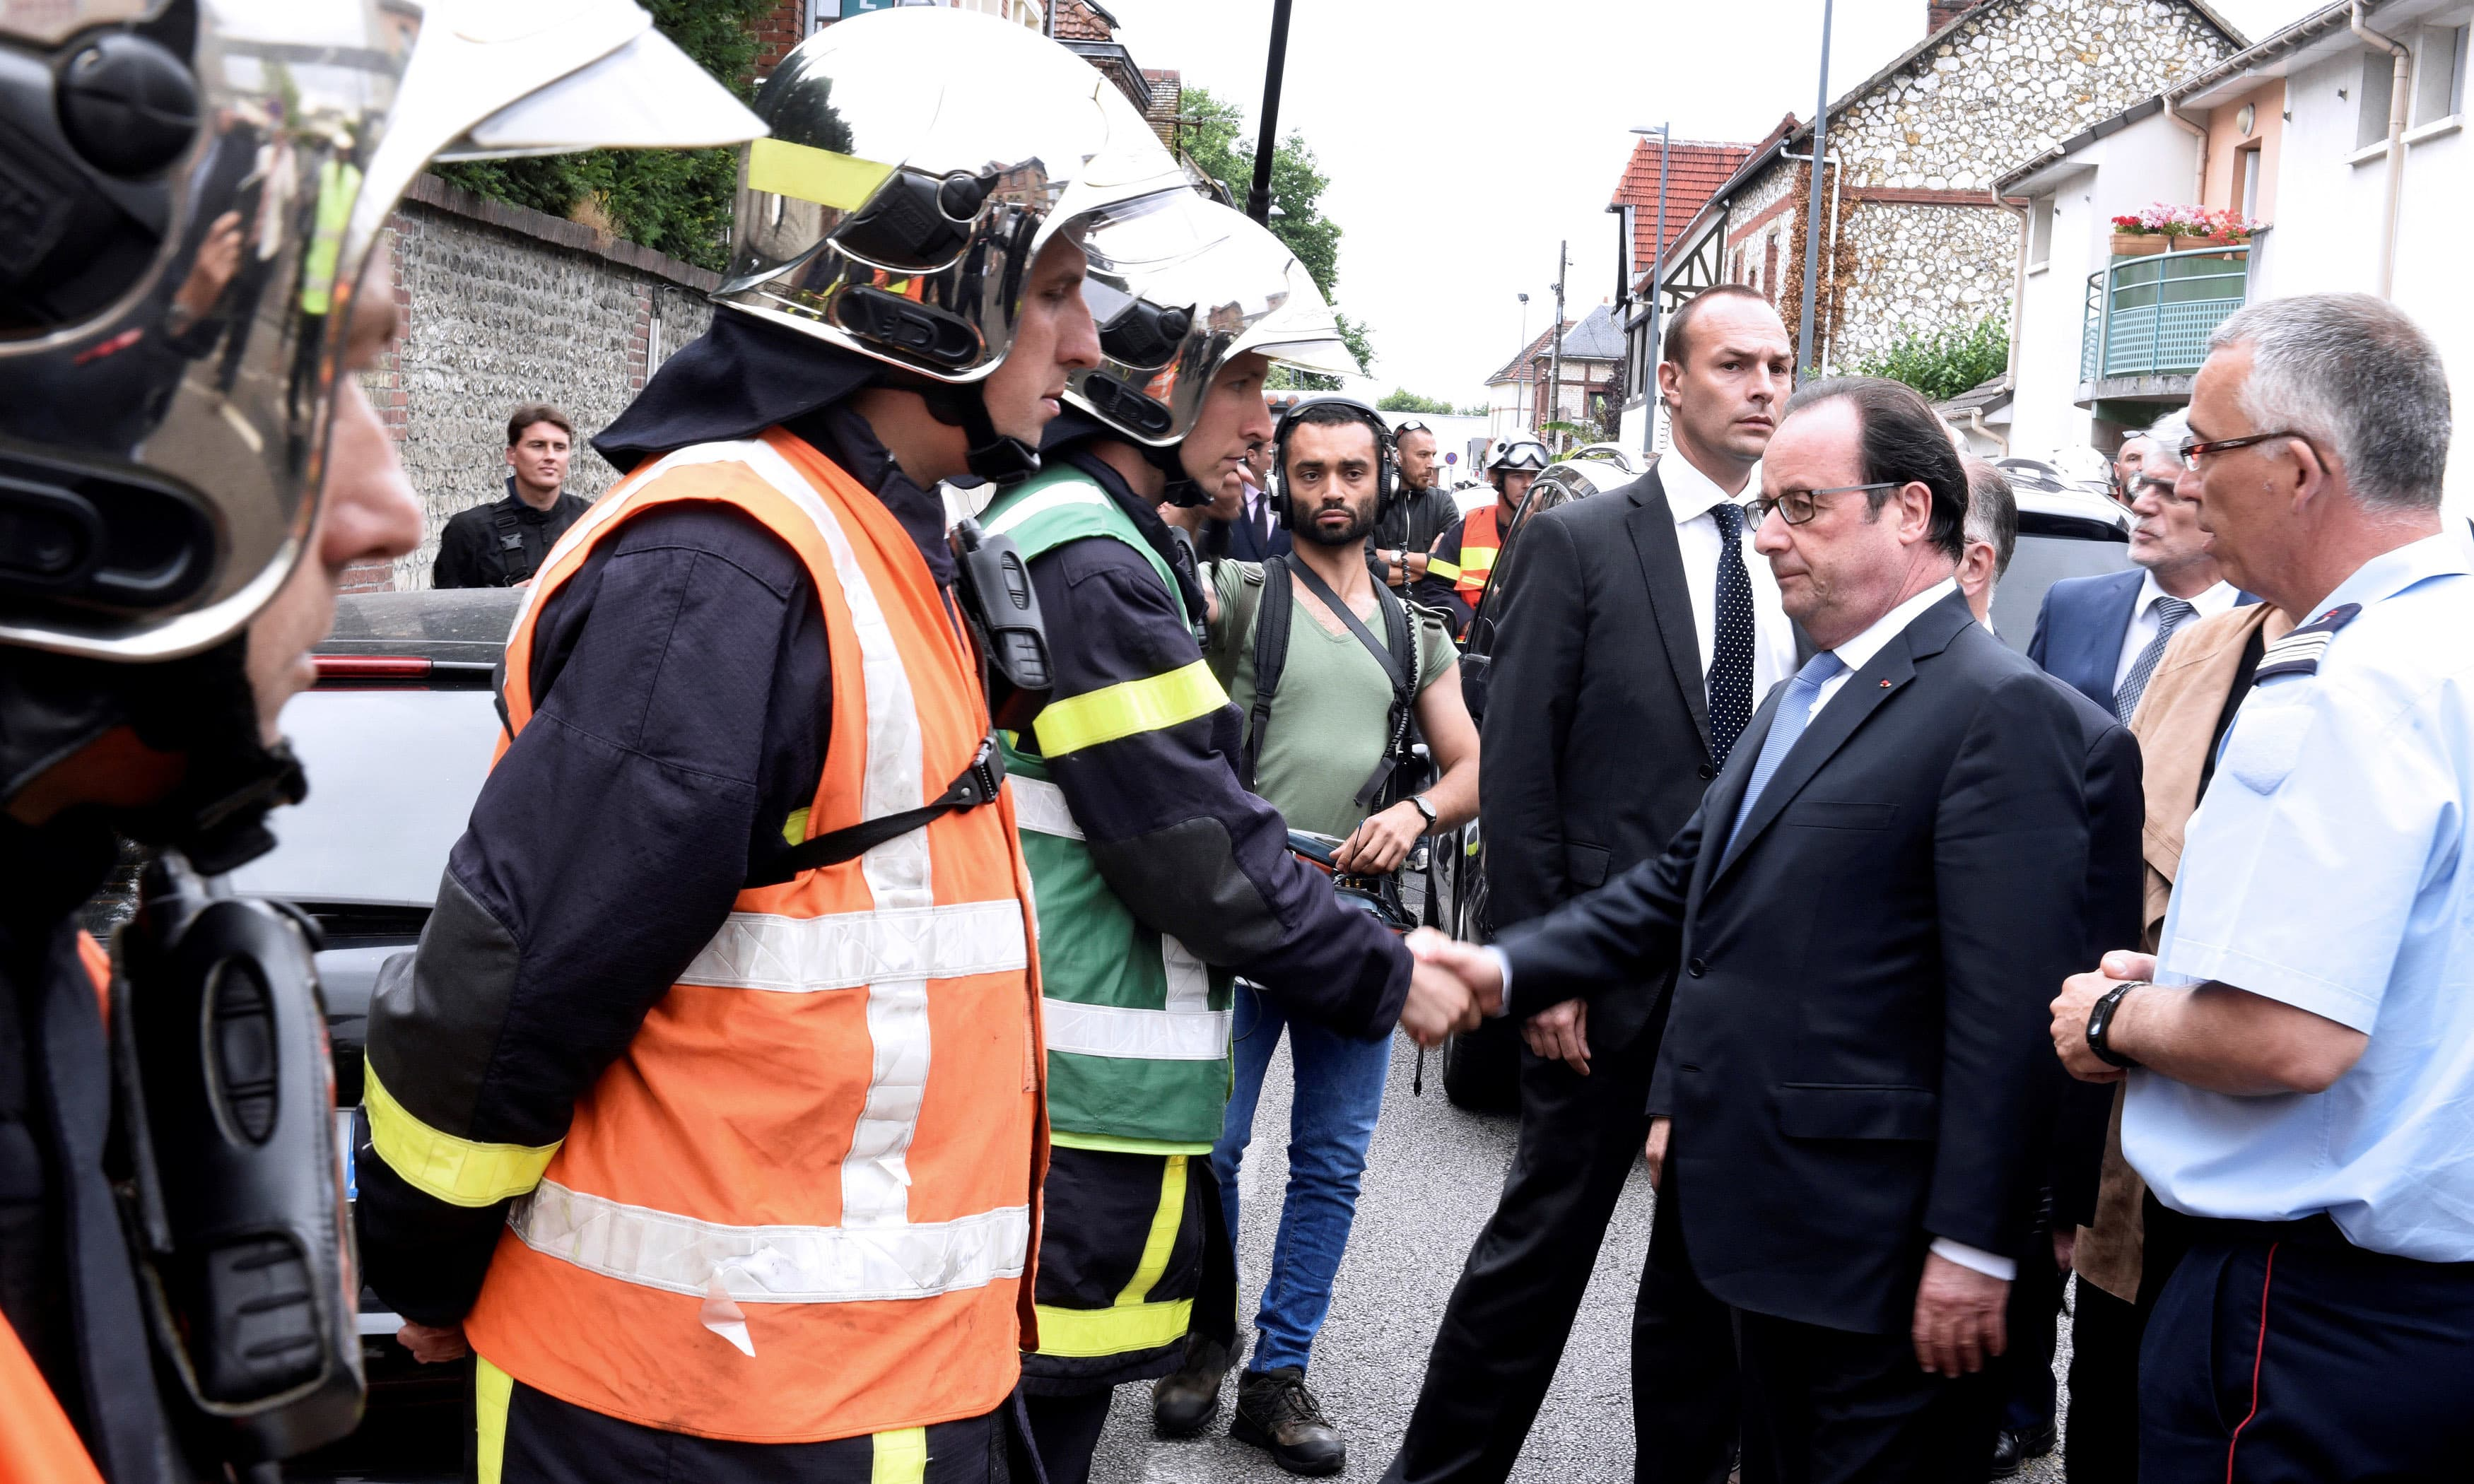 French President Francois Hollande shakes hands with firemen as he arrives after a hostage-taking at a church in Saint-Etienne-du-Rouvray. ─Reuters